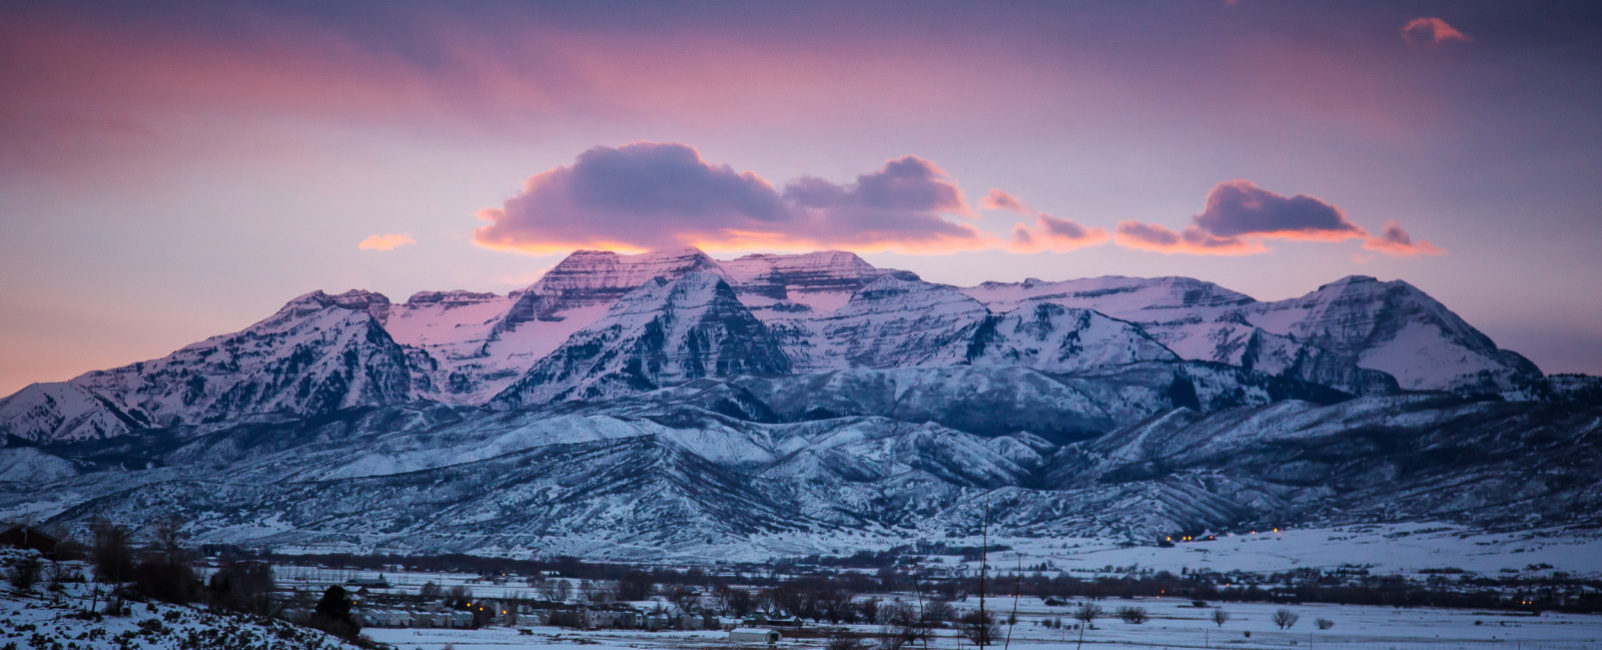 Visit Heber Valley | Your Next Ski Vacation Destination